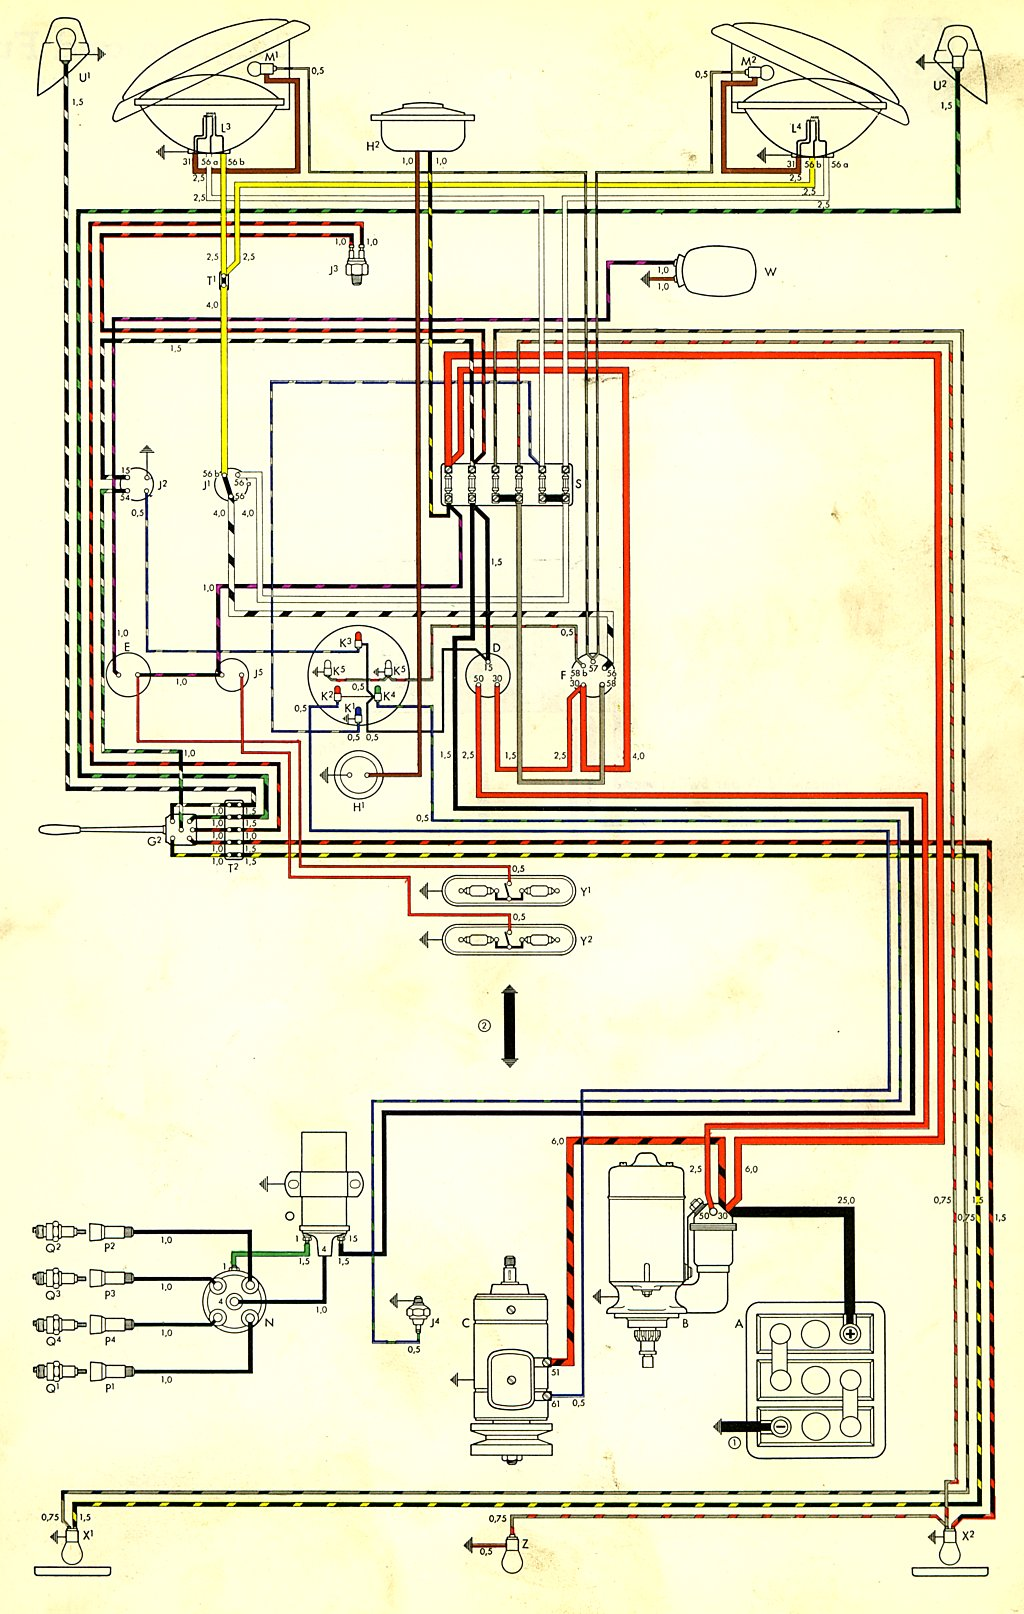 hight resolution of 74 vw alternator wiring diagram wiring diagram centre 74 vw alternator wiring diagram